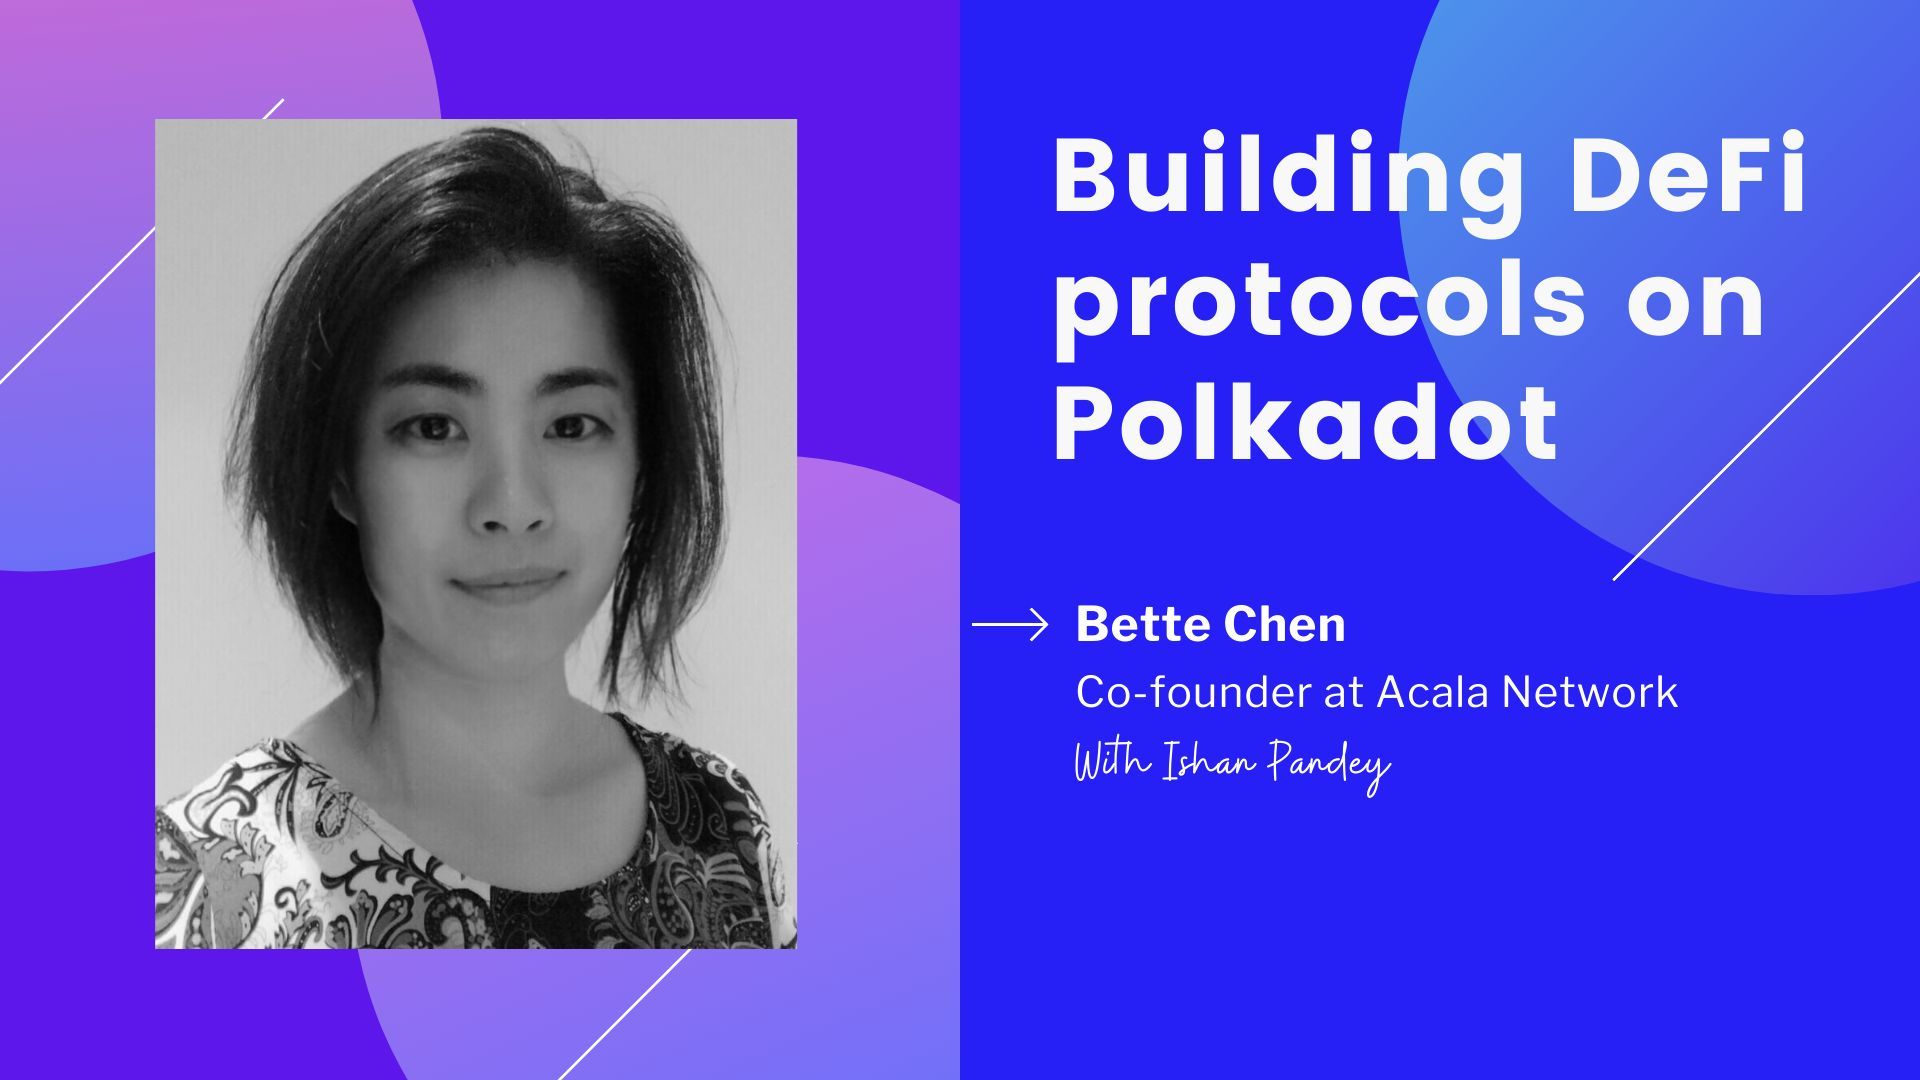 /building-defi-protocols-on-polkadot-an-interview-with-bette-chen-co-founder-at-acala-network-8y7r335w feature image